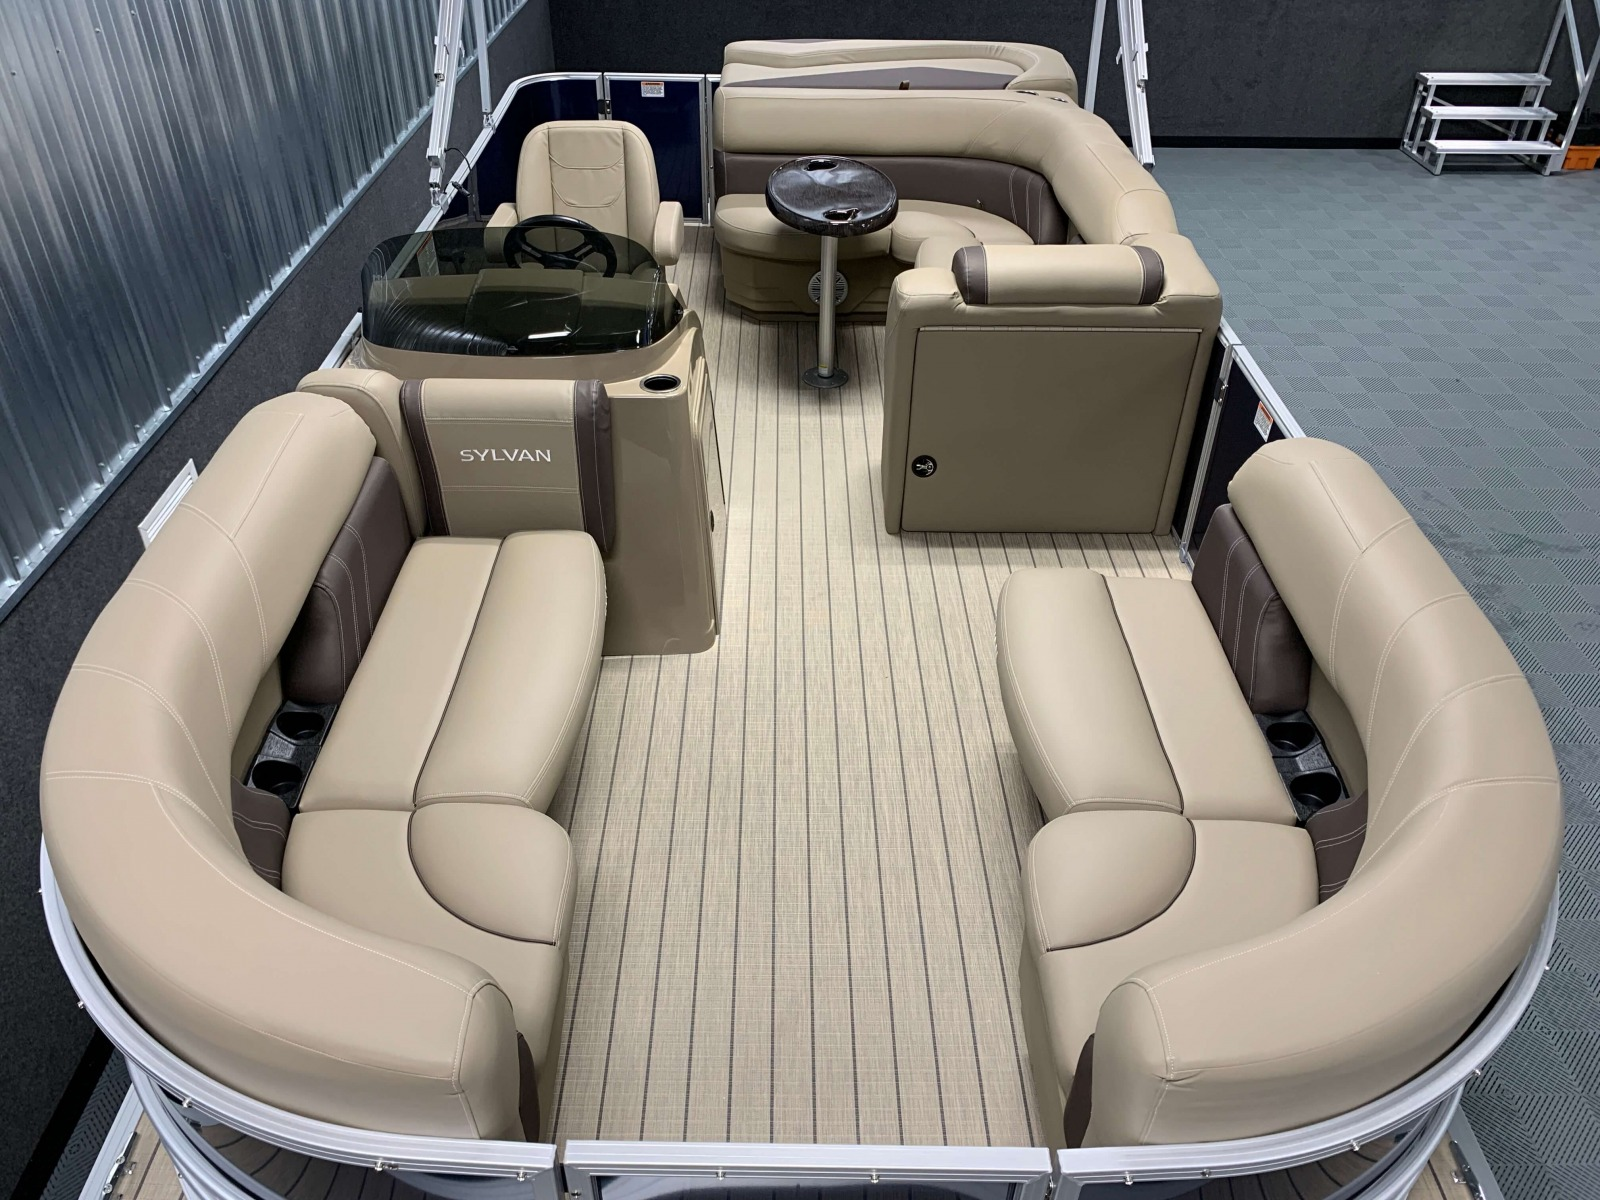 2020-Sylvan-Mirage-820-Cruise-Pontoon-Layout-2